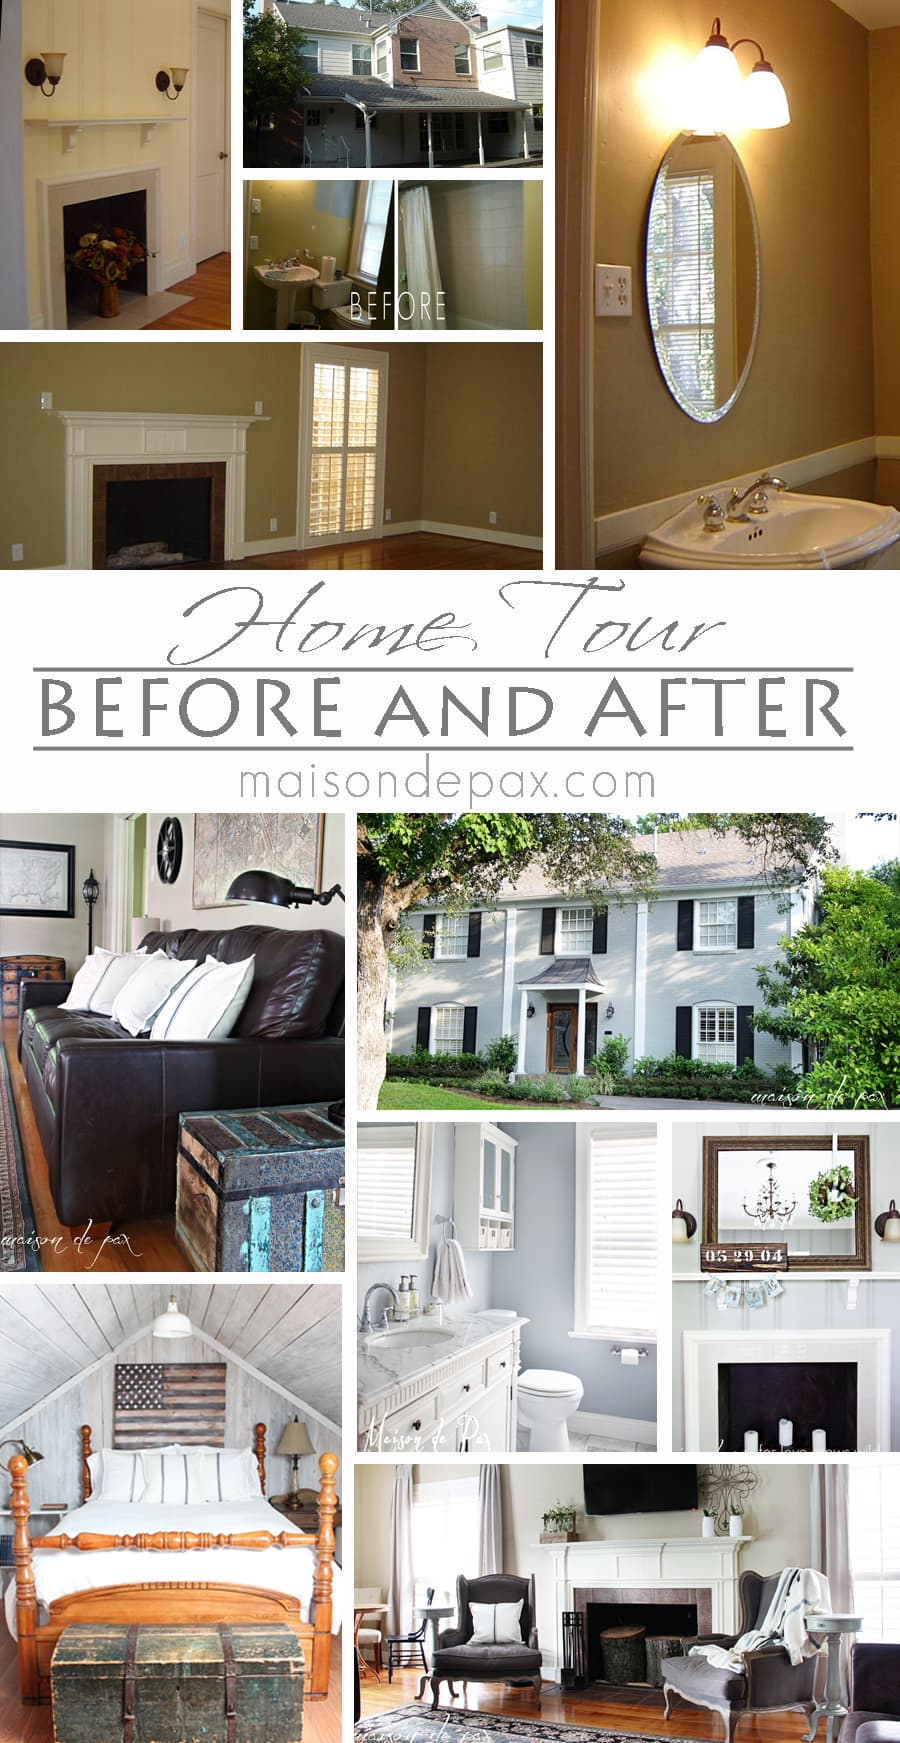 Before and After House Tour - Maison de Pax